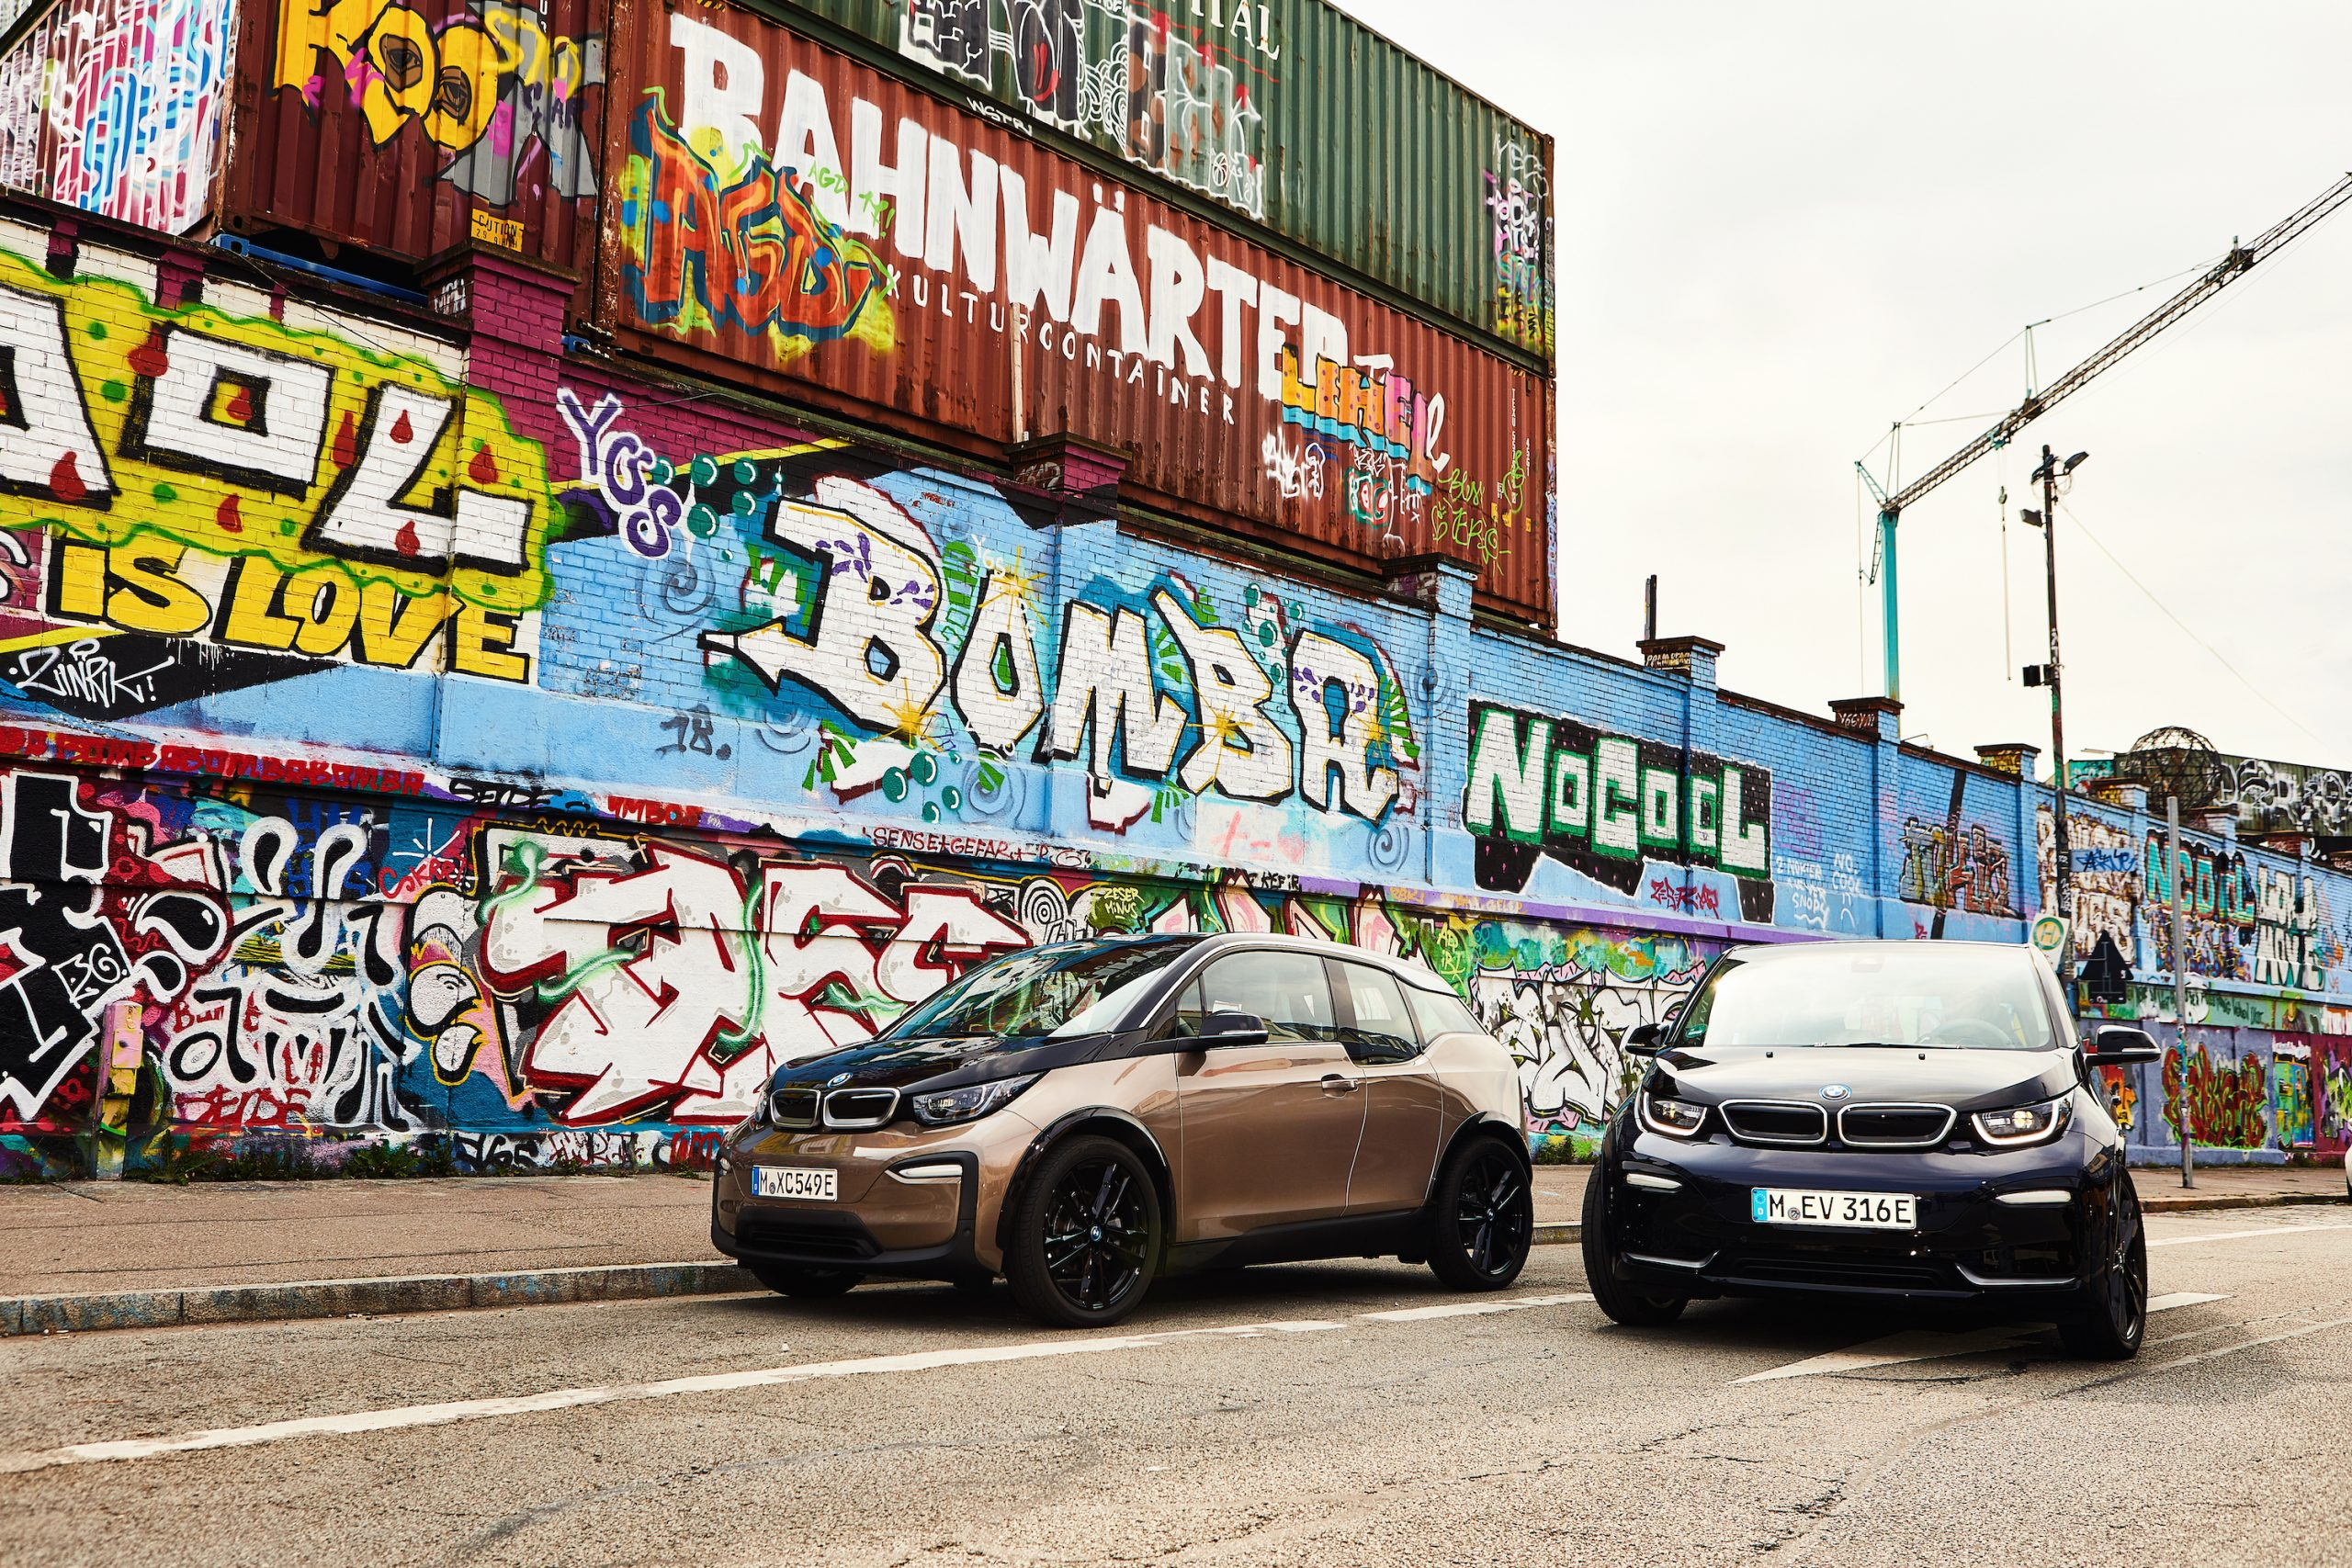 The BMW i3 is a popular used electric car